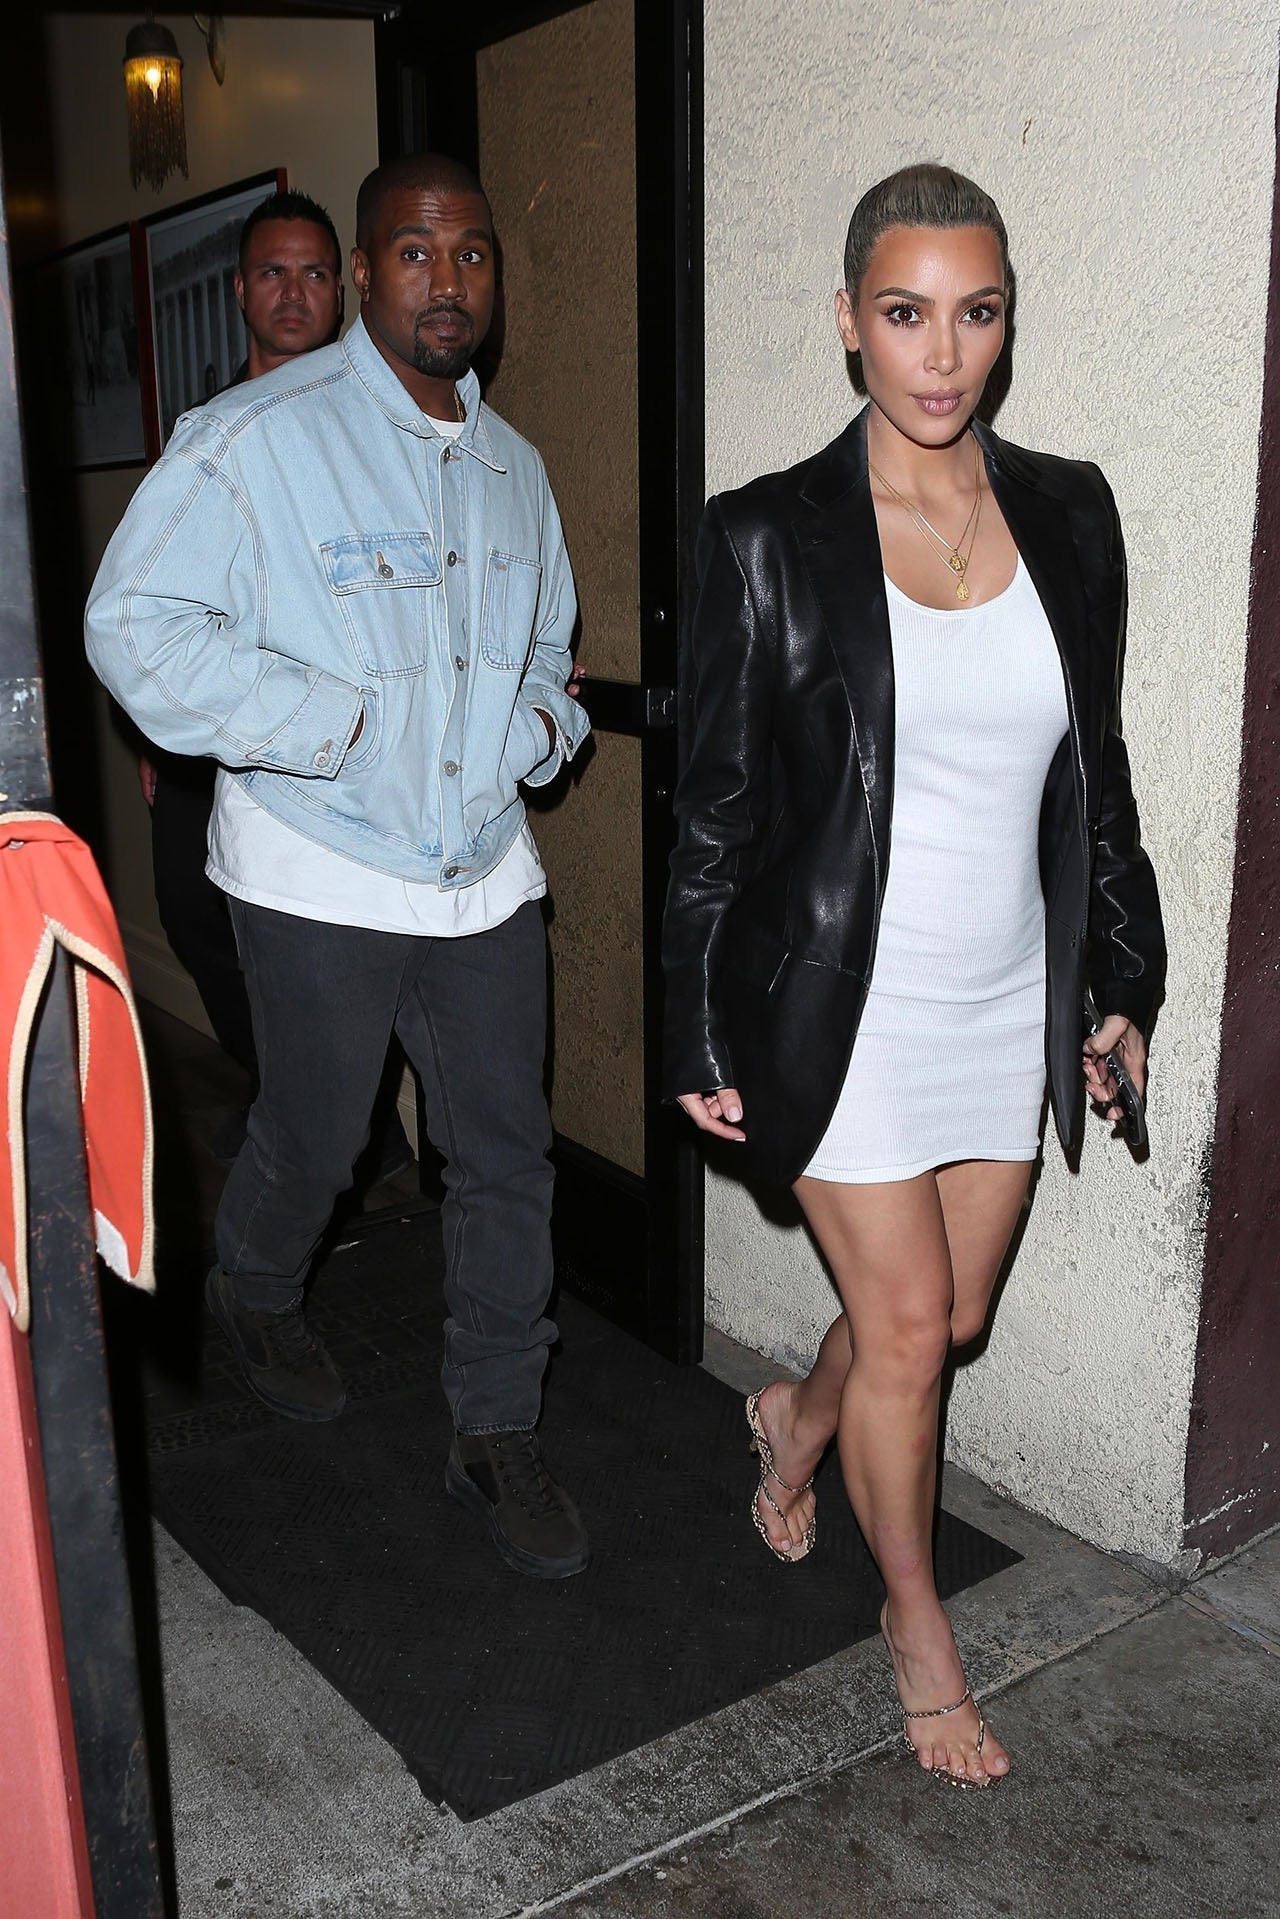 Kanye West and Kim Kardashian go out to dinner